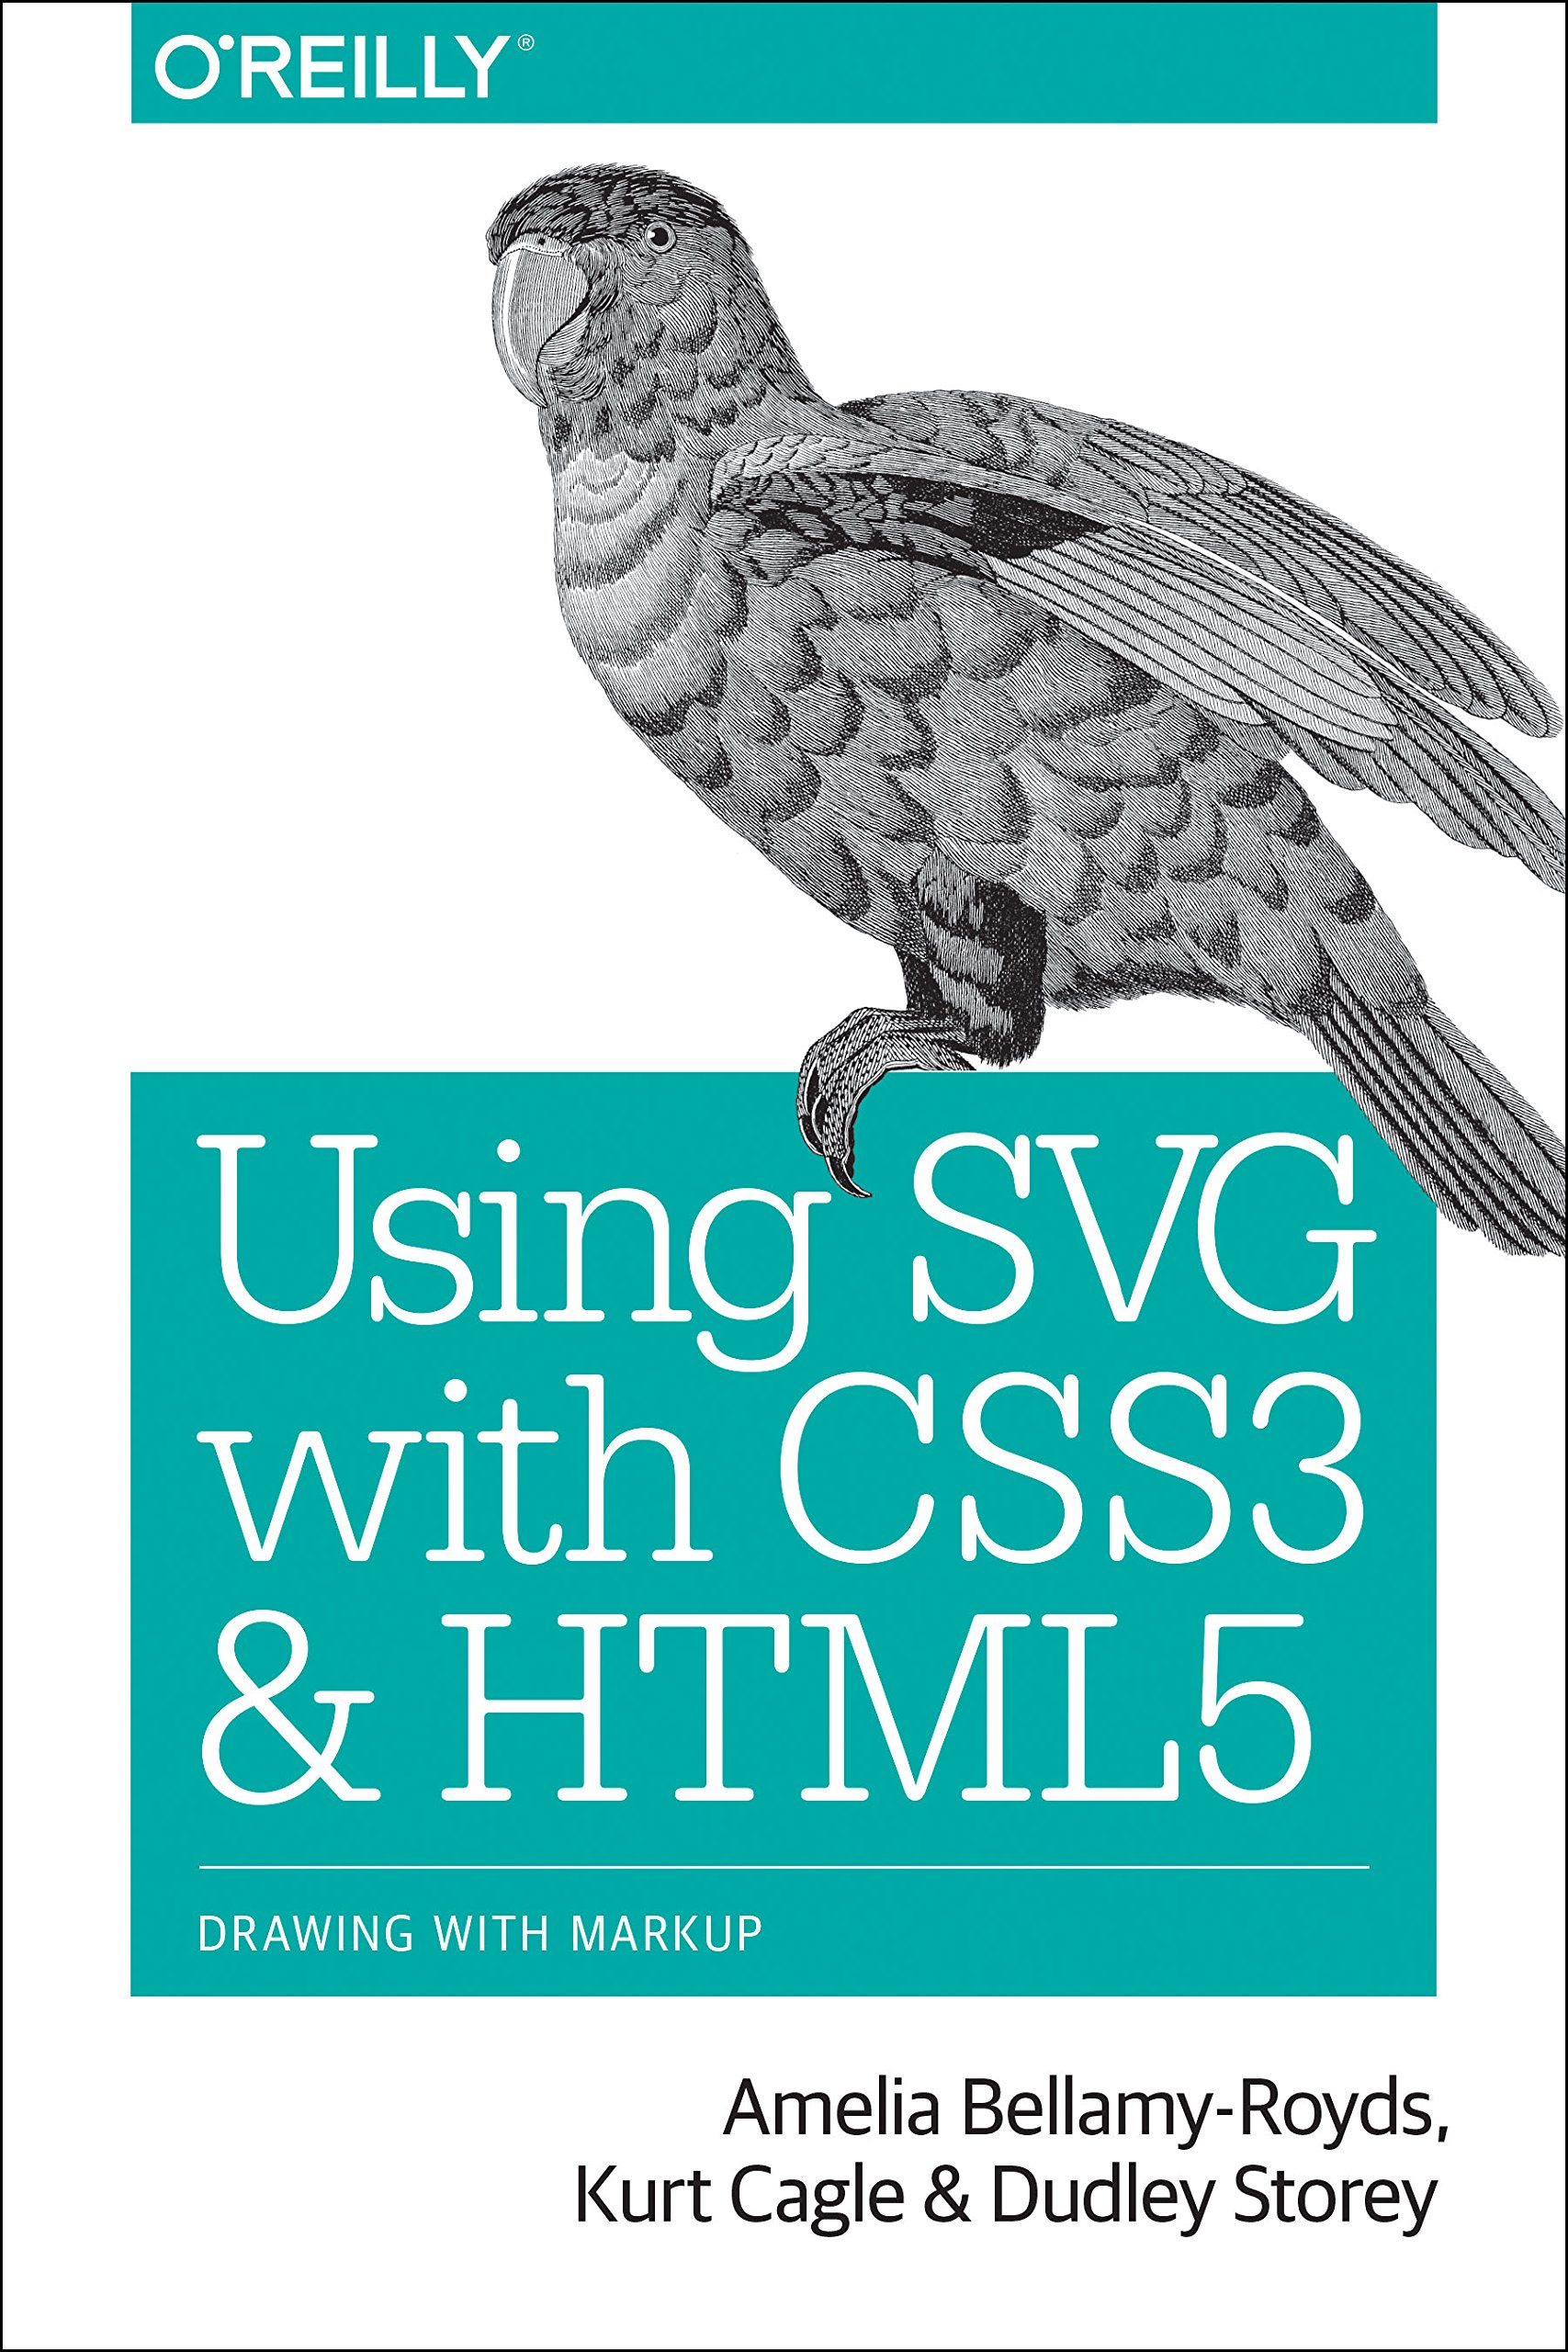 Coloring book html5 - Using Svg With Css3 And Html5 Vector Graphics For Web Design Amazon Co Uk Amelia Bellamy Royds Kurt Cagle 9781491921975 Books